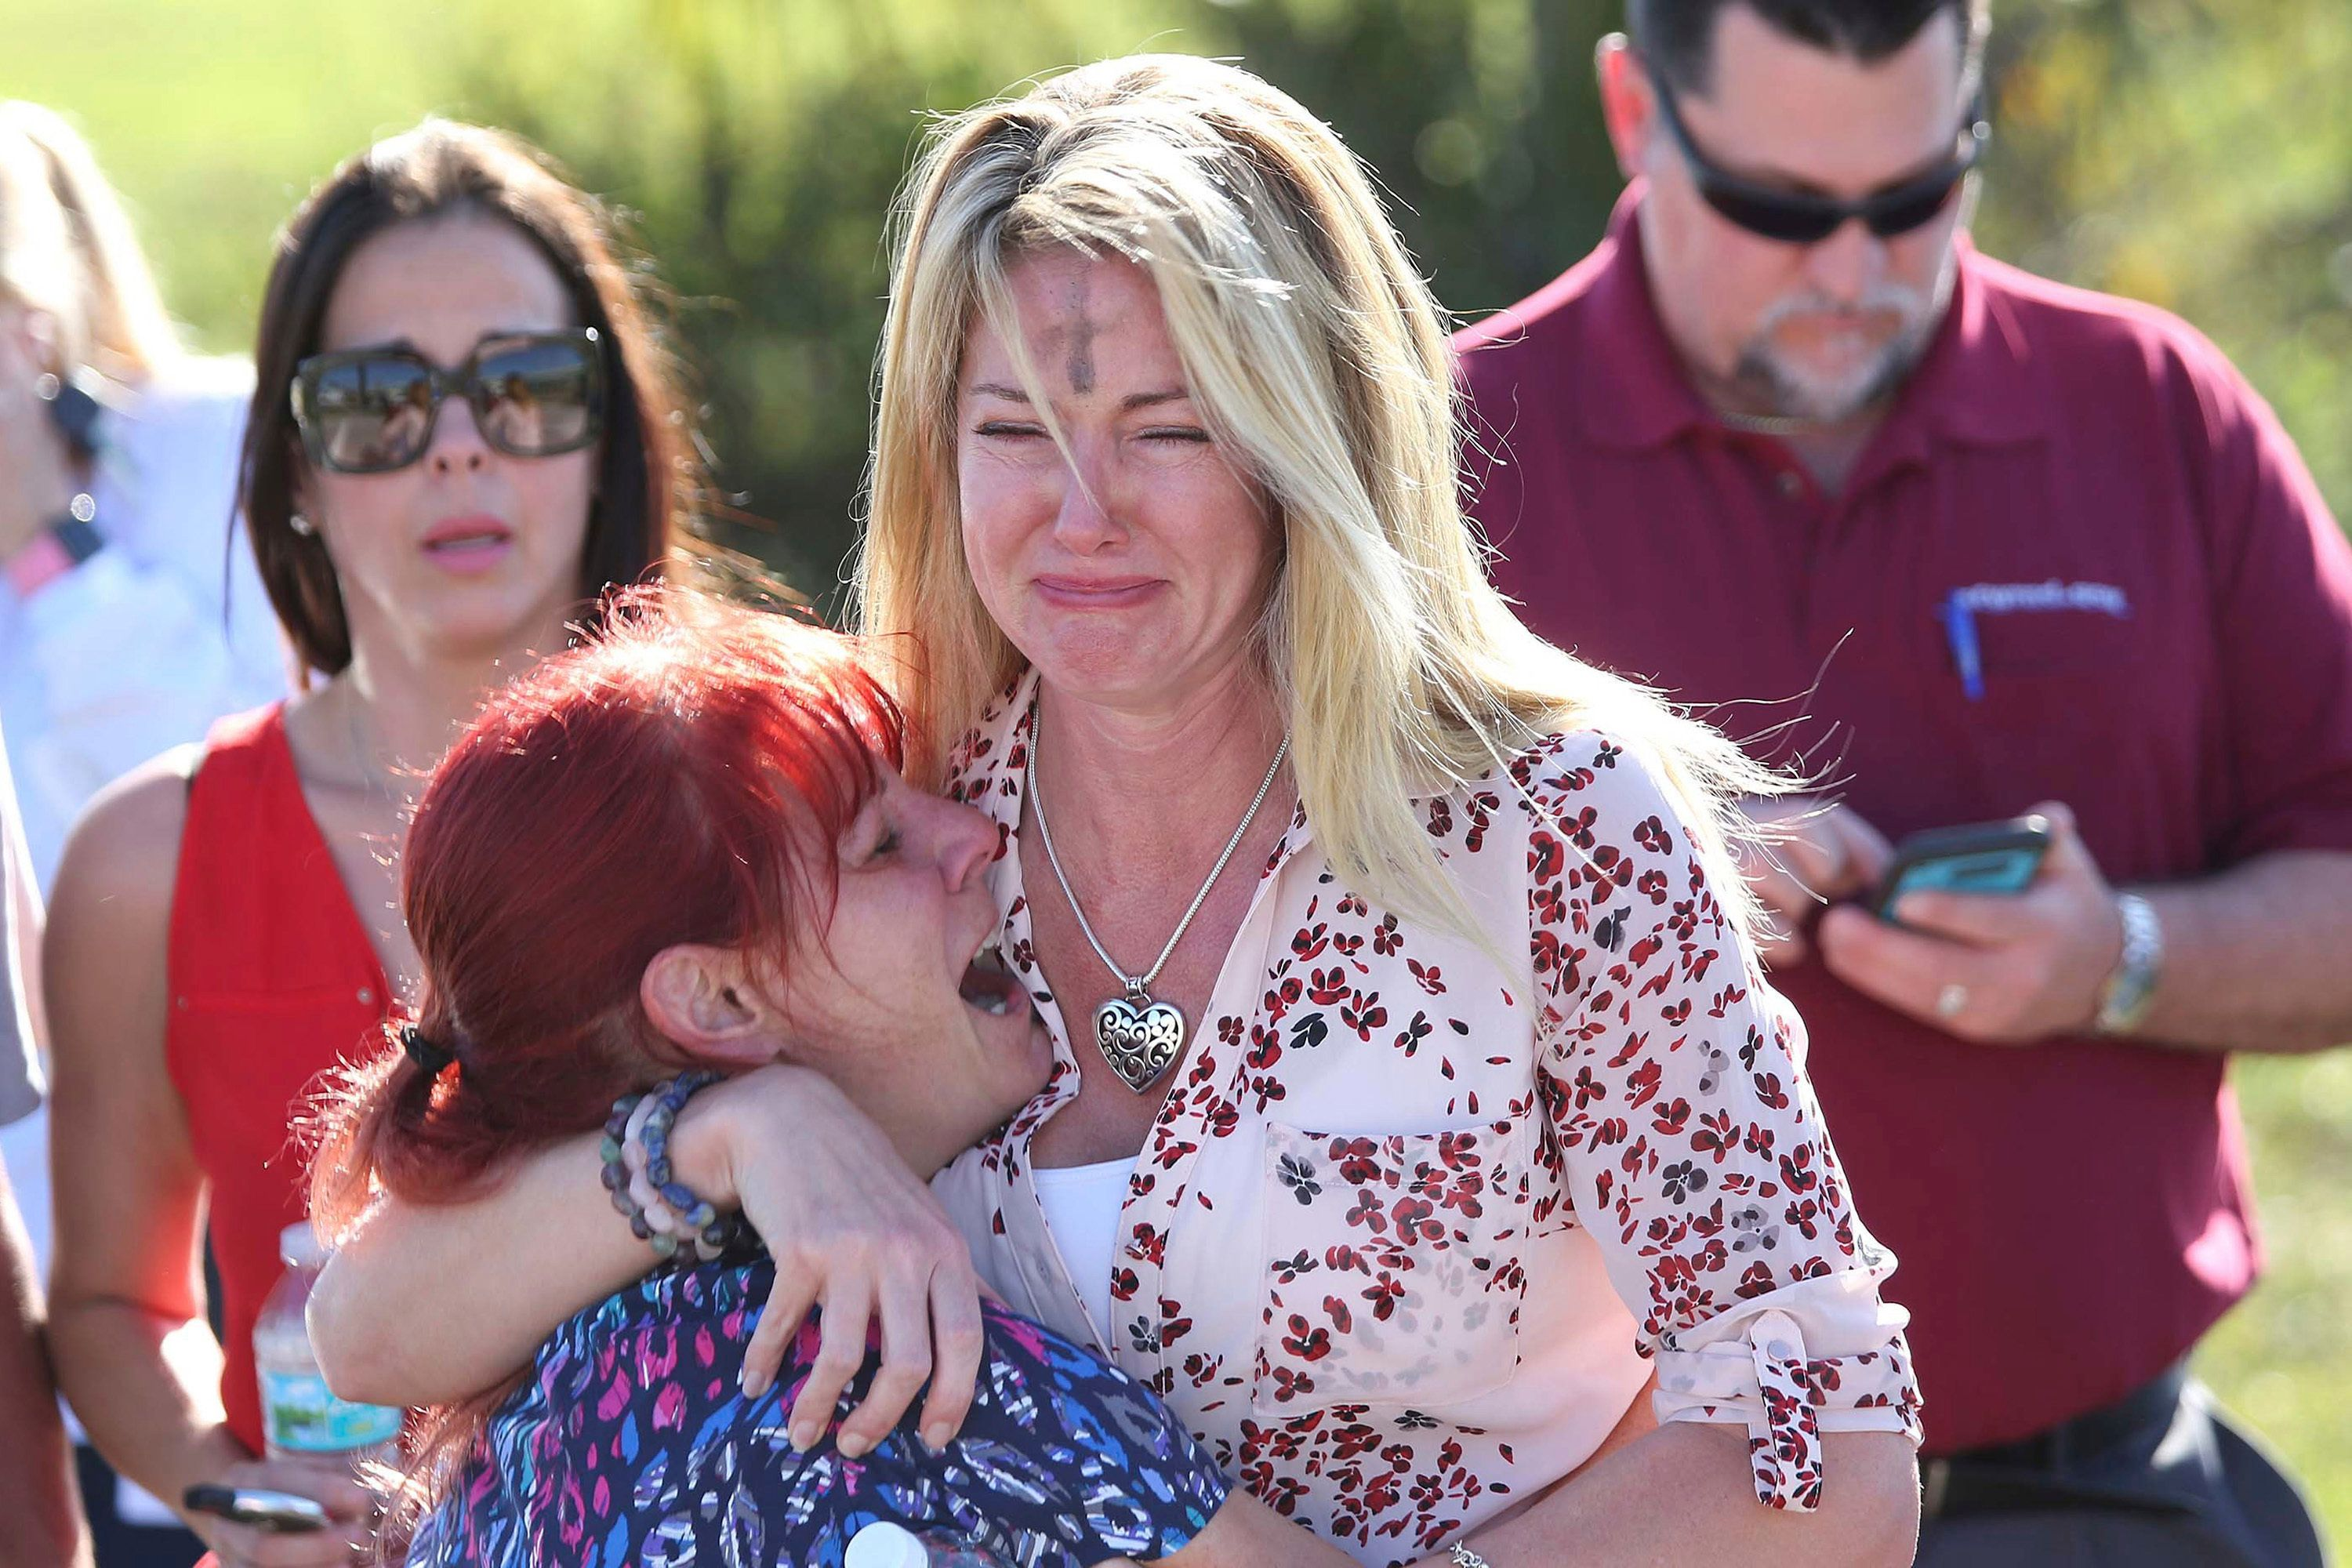 Parents wait for news after reports of a shooting at Marjory Stoneman Douglas High School in Parkland, Fla., on Wednesday. One woman, seen sobbing, had a cross marked on her forehead with it being Ash Wednesday.